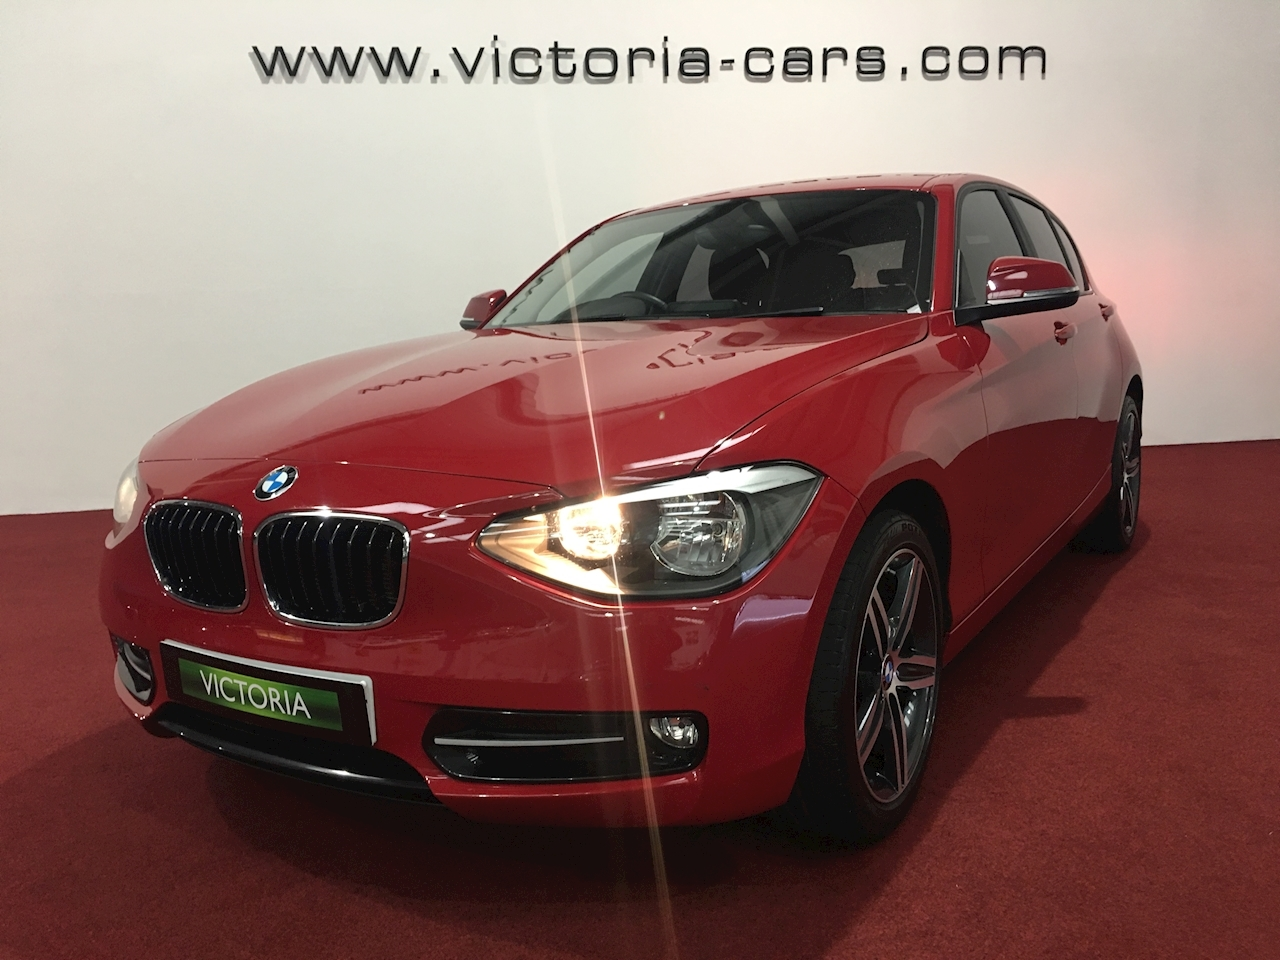 Used Bmw 1 Series 116D Sport | Victoria Cars -